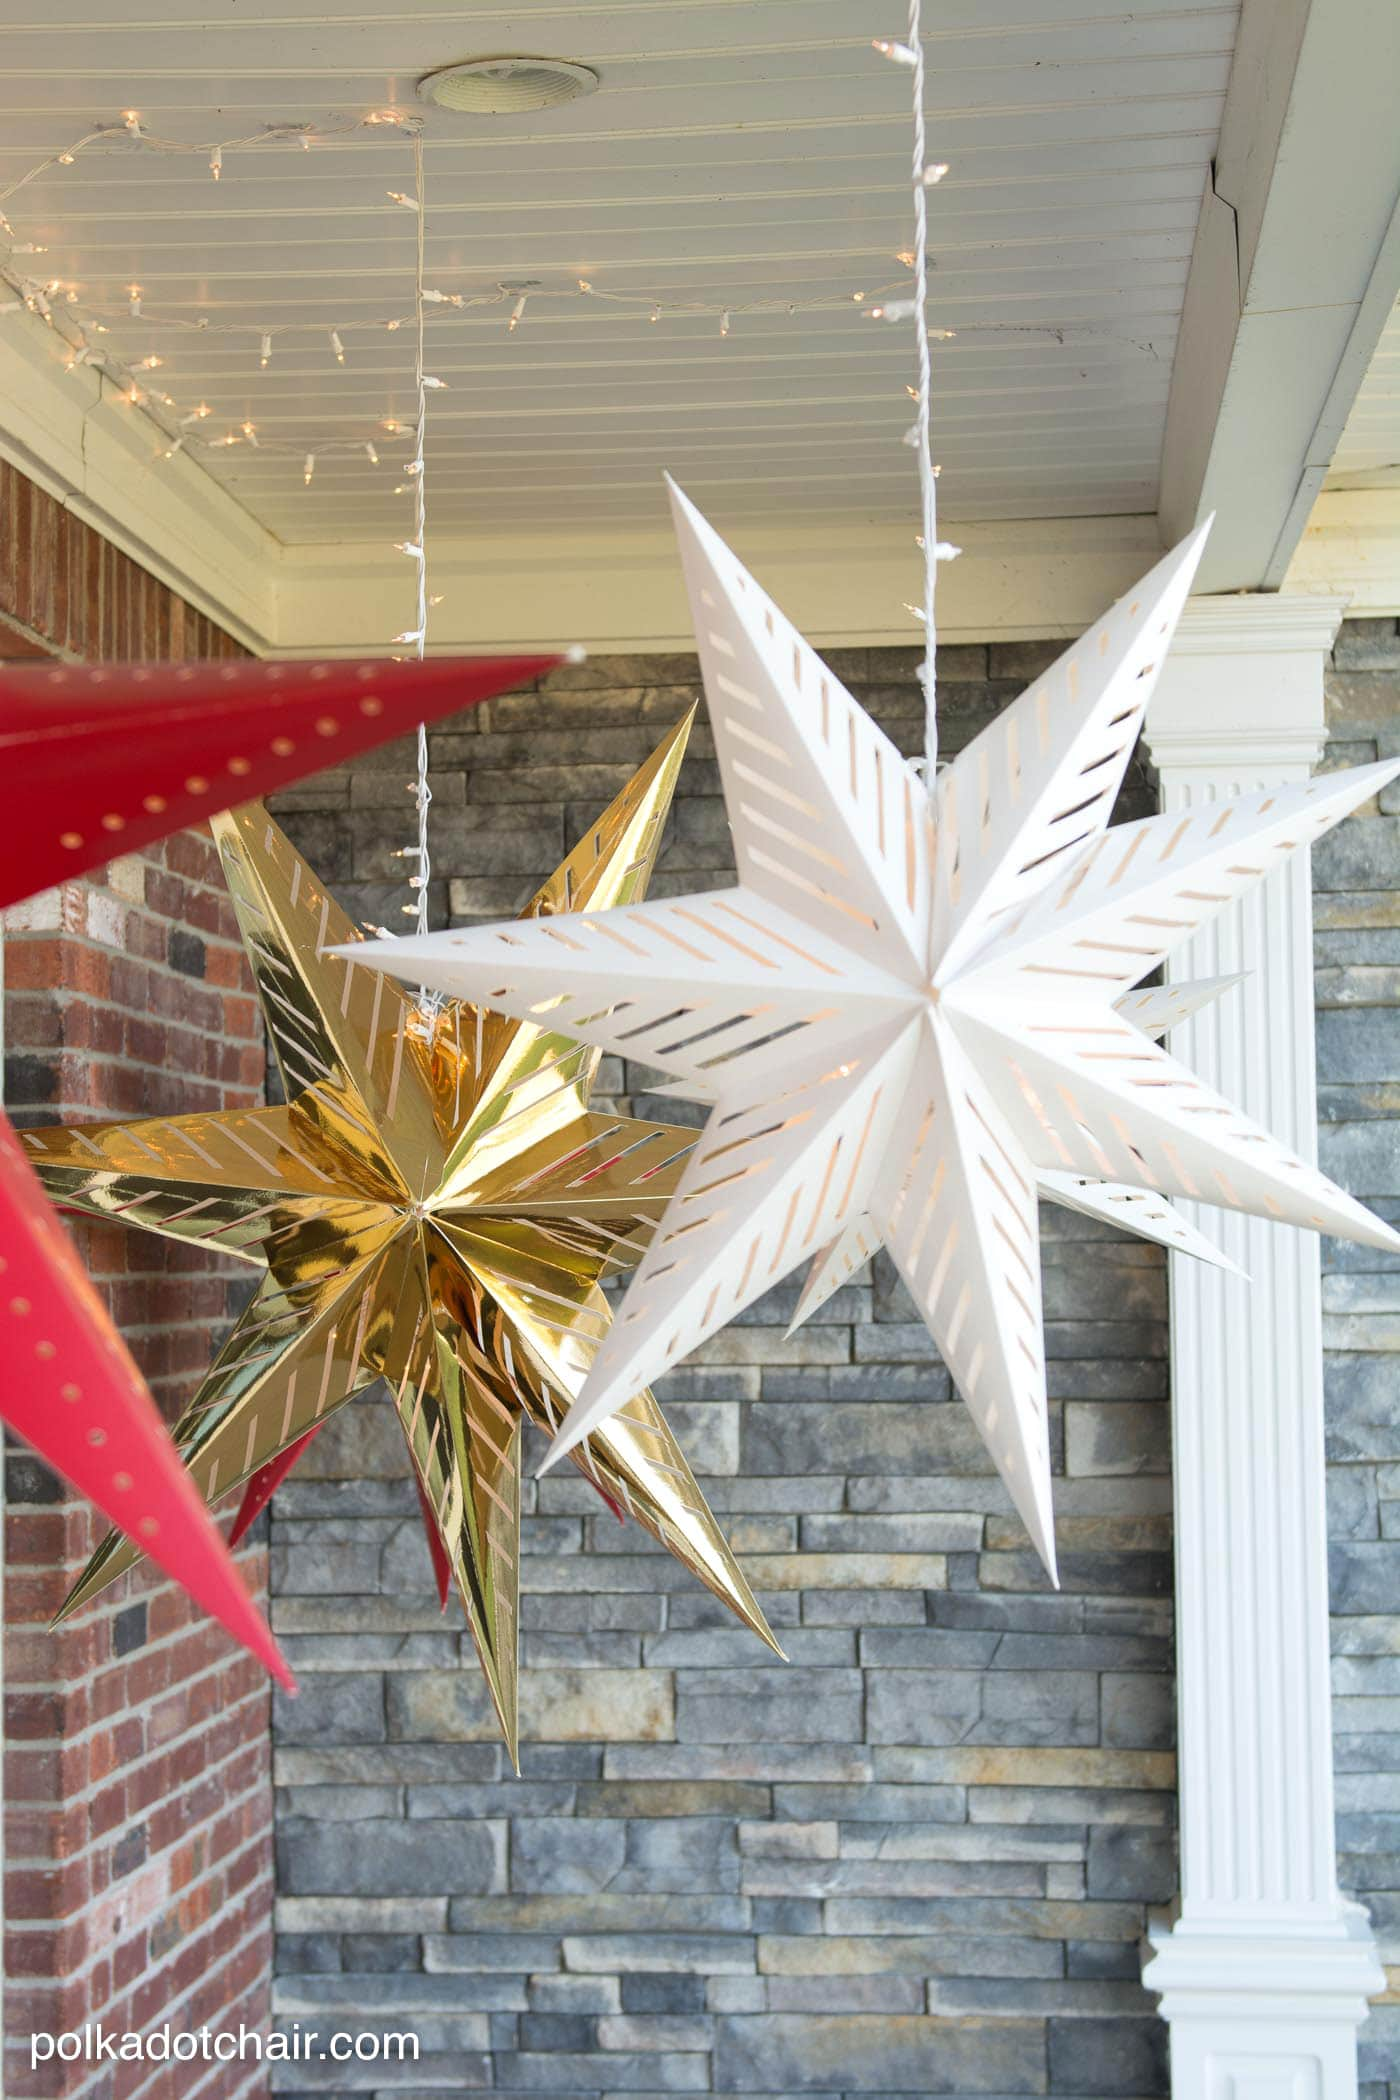 When Does Ikea Close Hanging Star Lanterns; A Christmas Front Porch Decorating